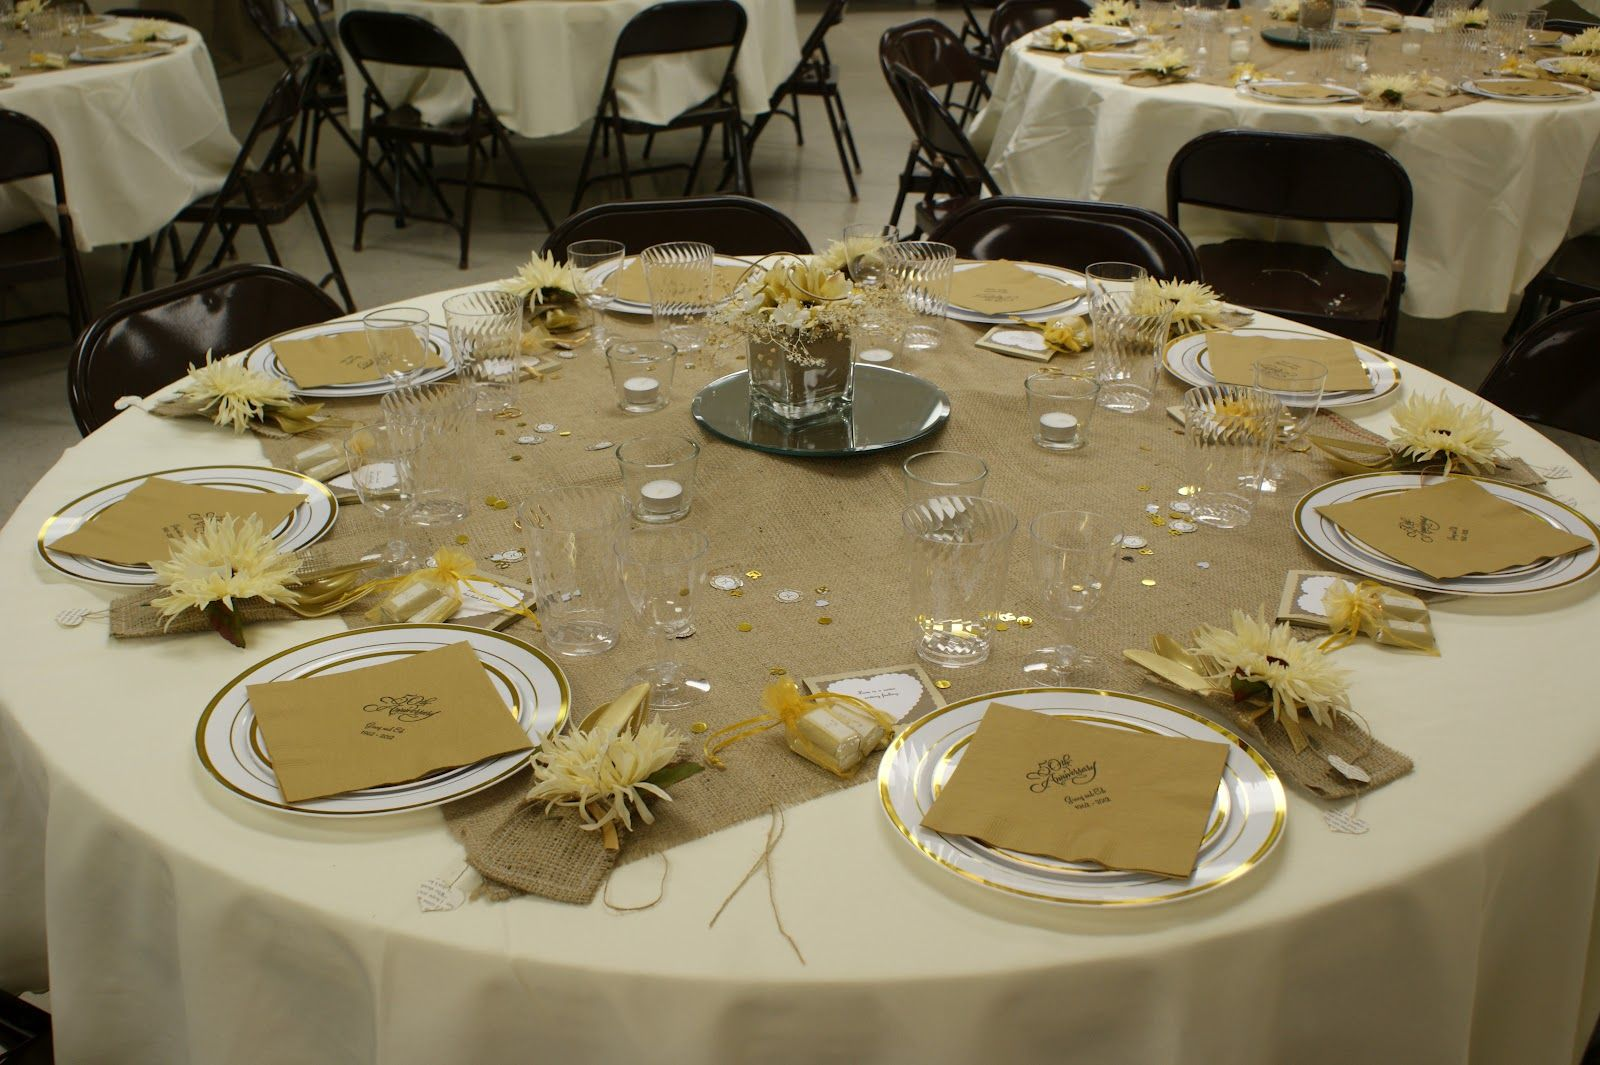 Homemade Centerpieces for 50th Anniversary | 50th Anni ...